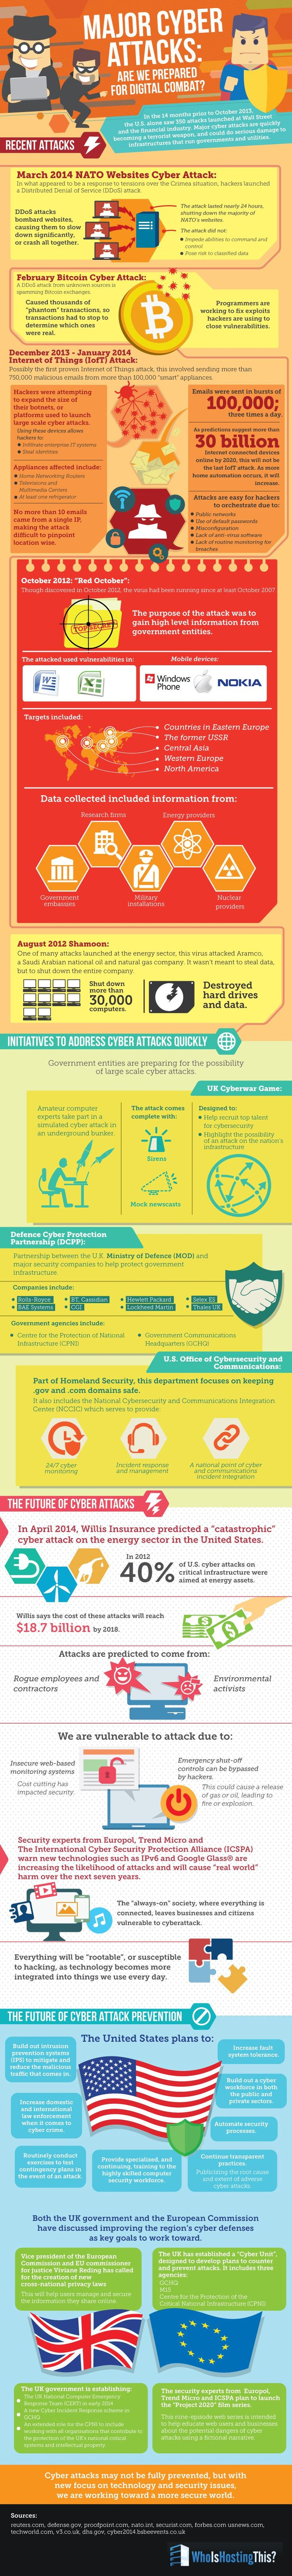 Major Cyber Attacks: Are We Prepared for Digital Combat? #infographic #Cyber #Internet